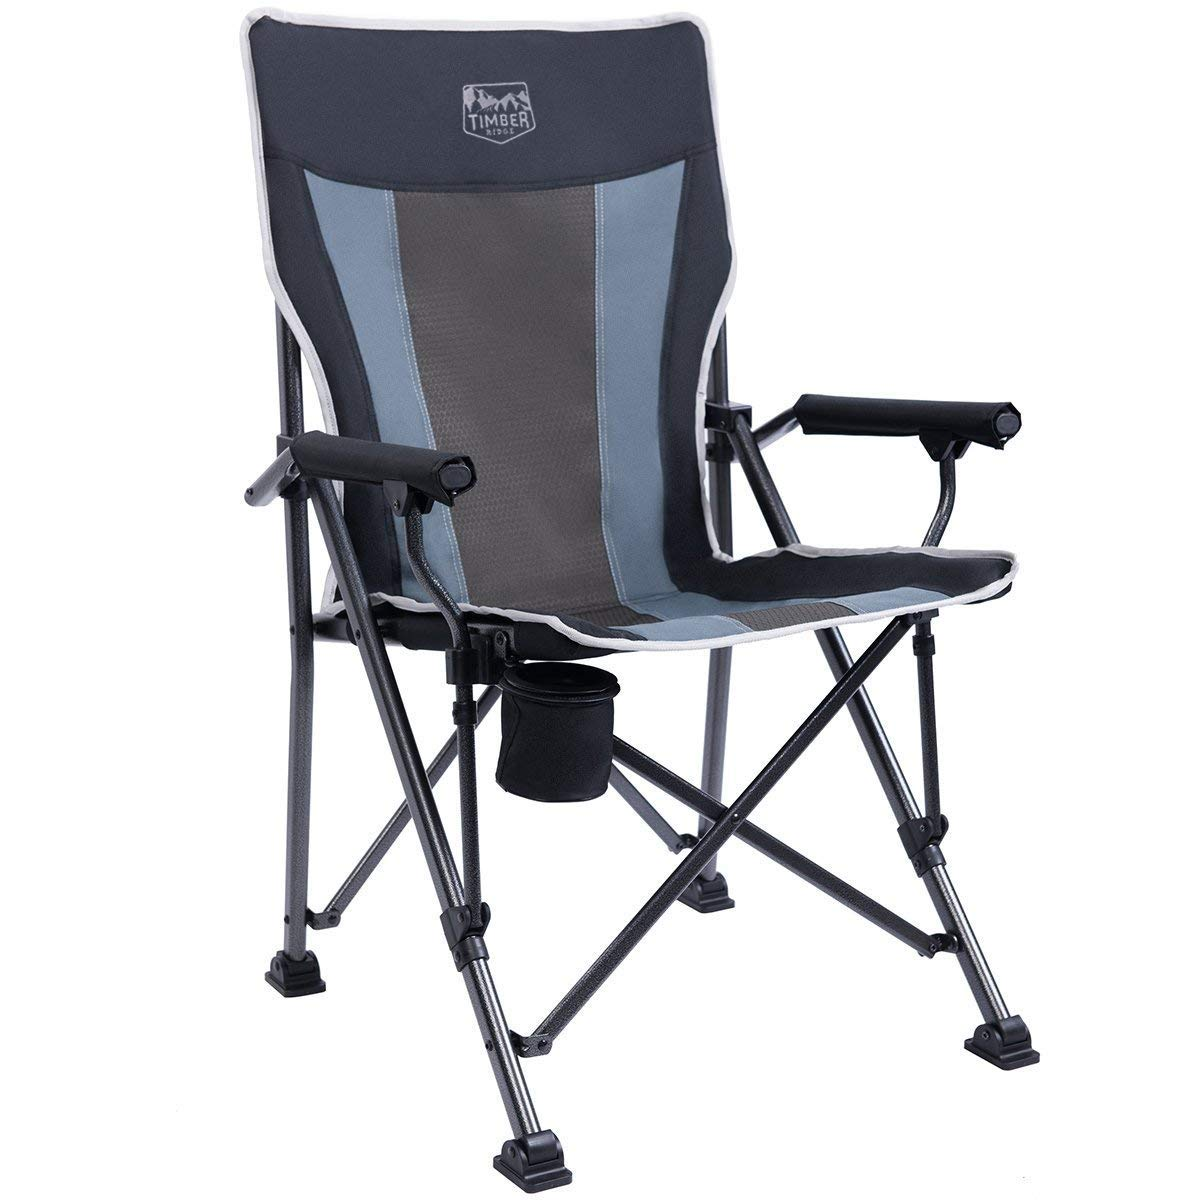 Top 10 Best Camping High Chair For Babies 2021 Reviews 9